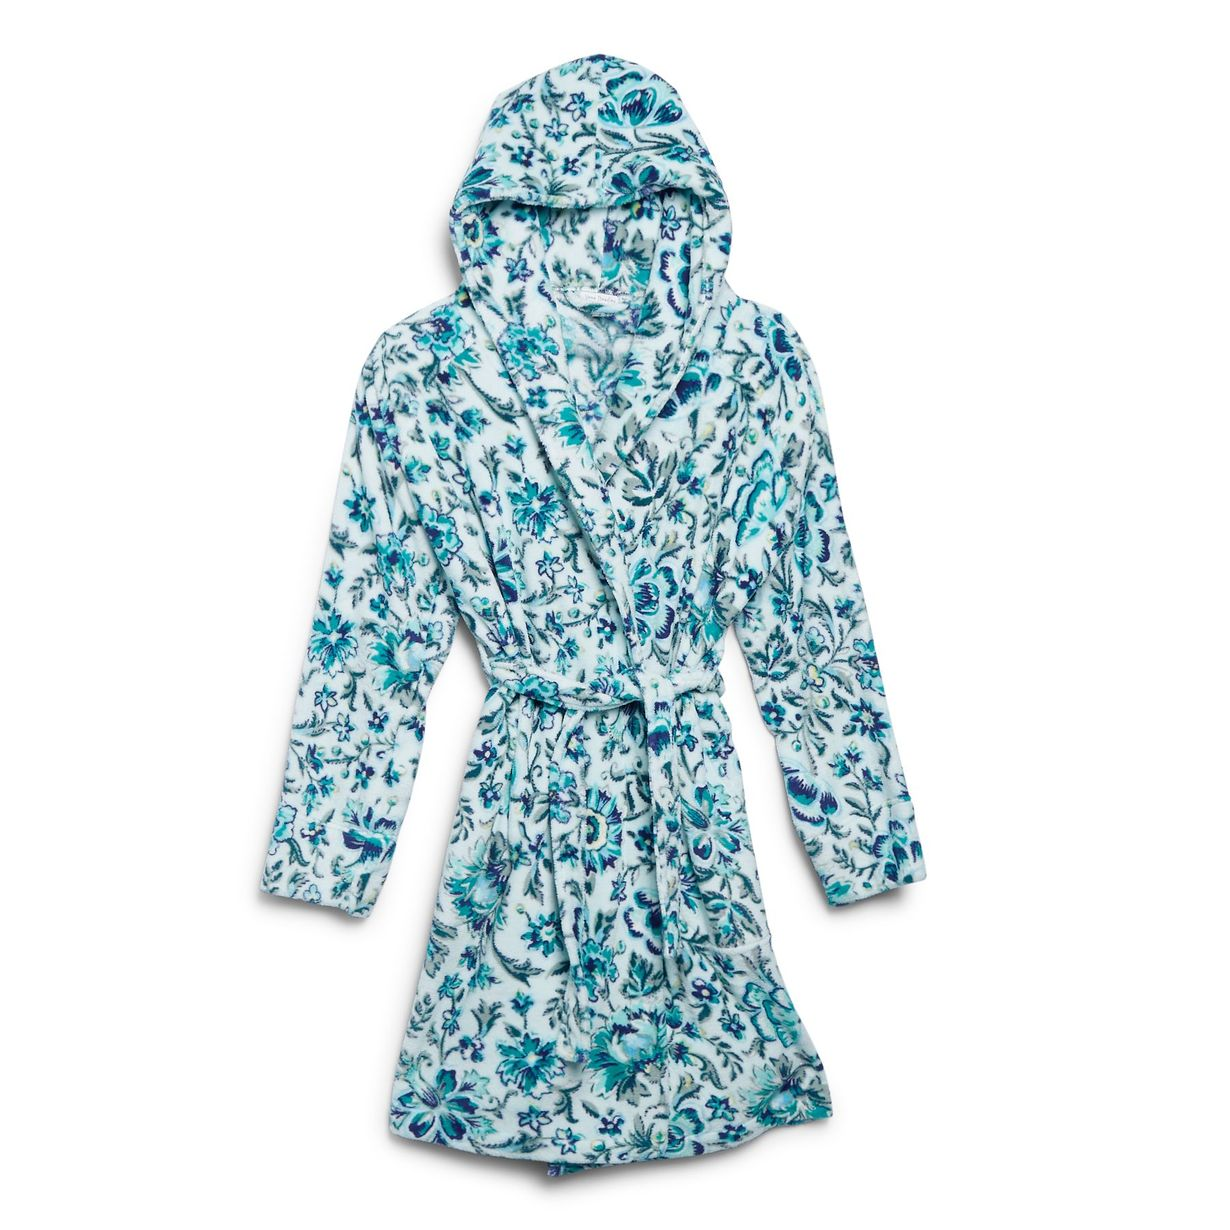 The ideal self-care scenario calls for a ridiculously soft bathrobe (duh), and this one from Vera Bradley certainly fits the bill. The 100 percent polyester fleece is the perfect thickness for cooler temps, and the generously sized hood is great for cozy cocooning.